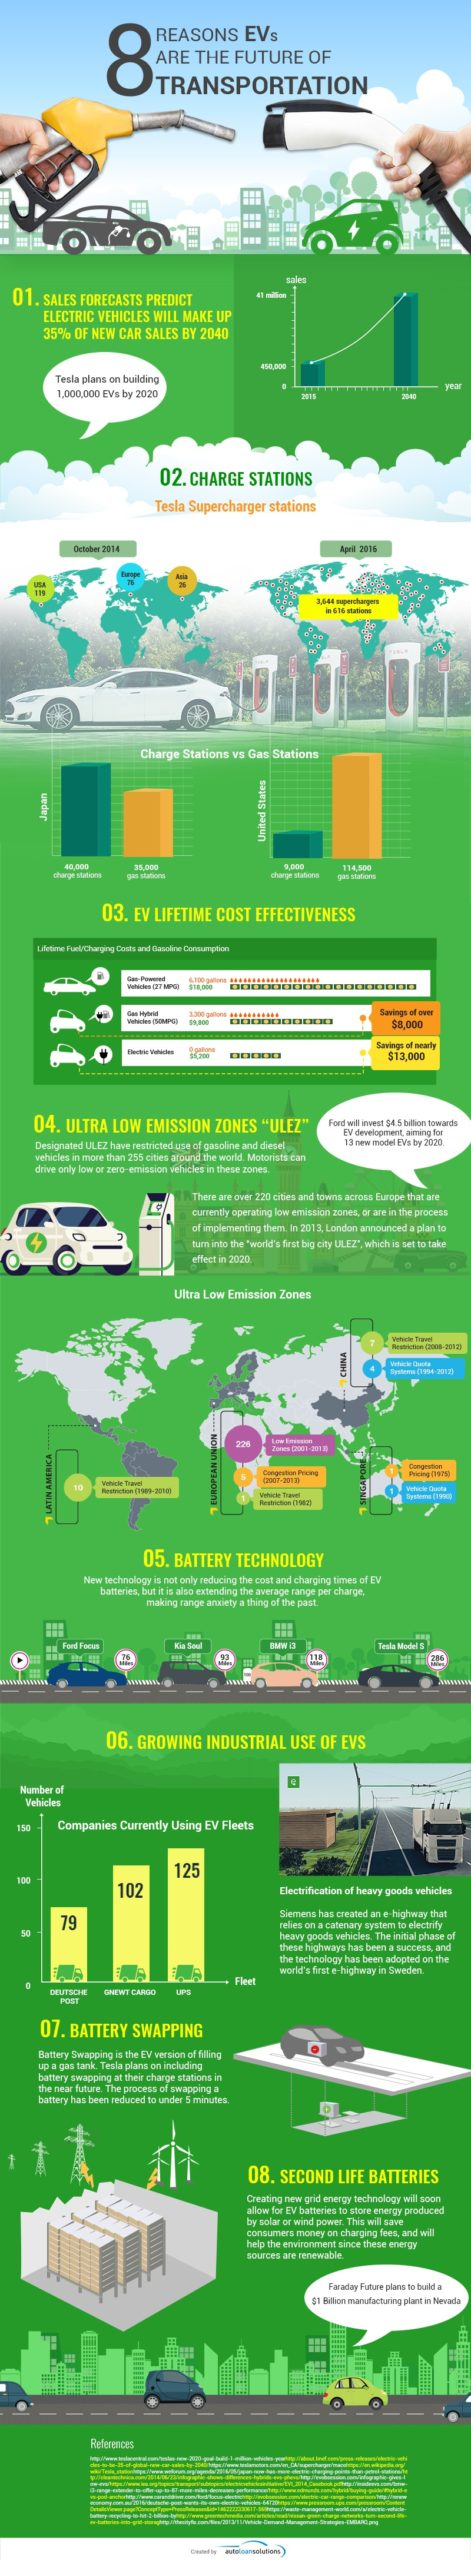 electric-vehicles-are-the-future-1